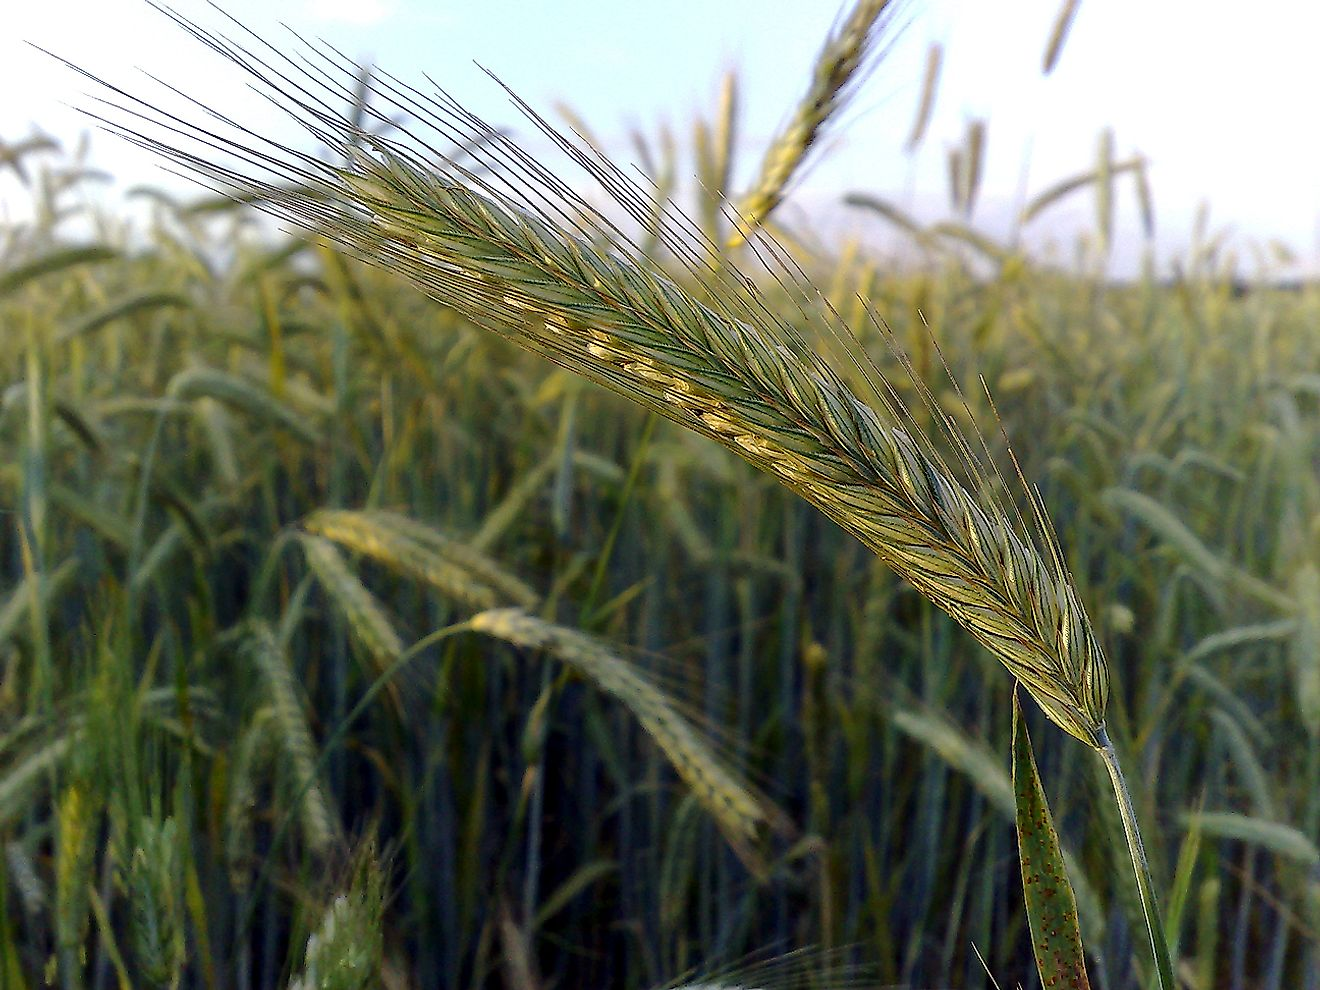 An ear of rye in a crop field.